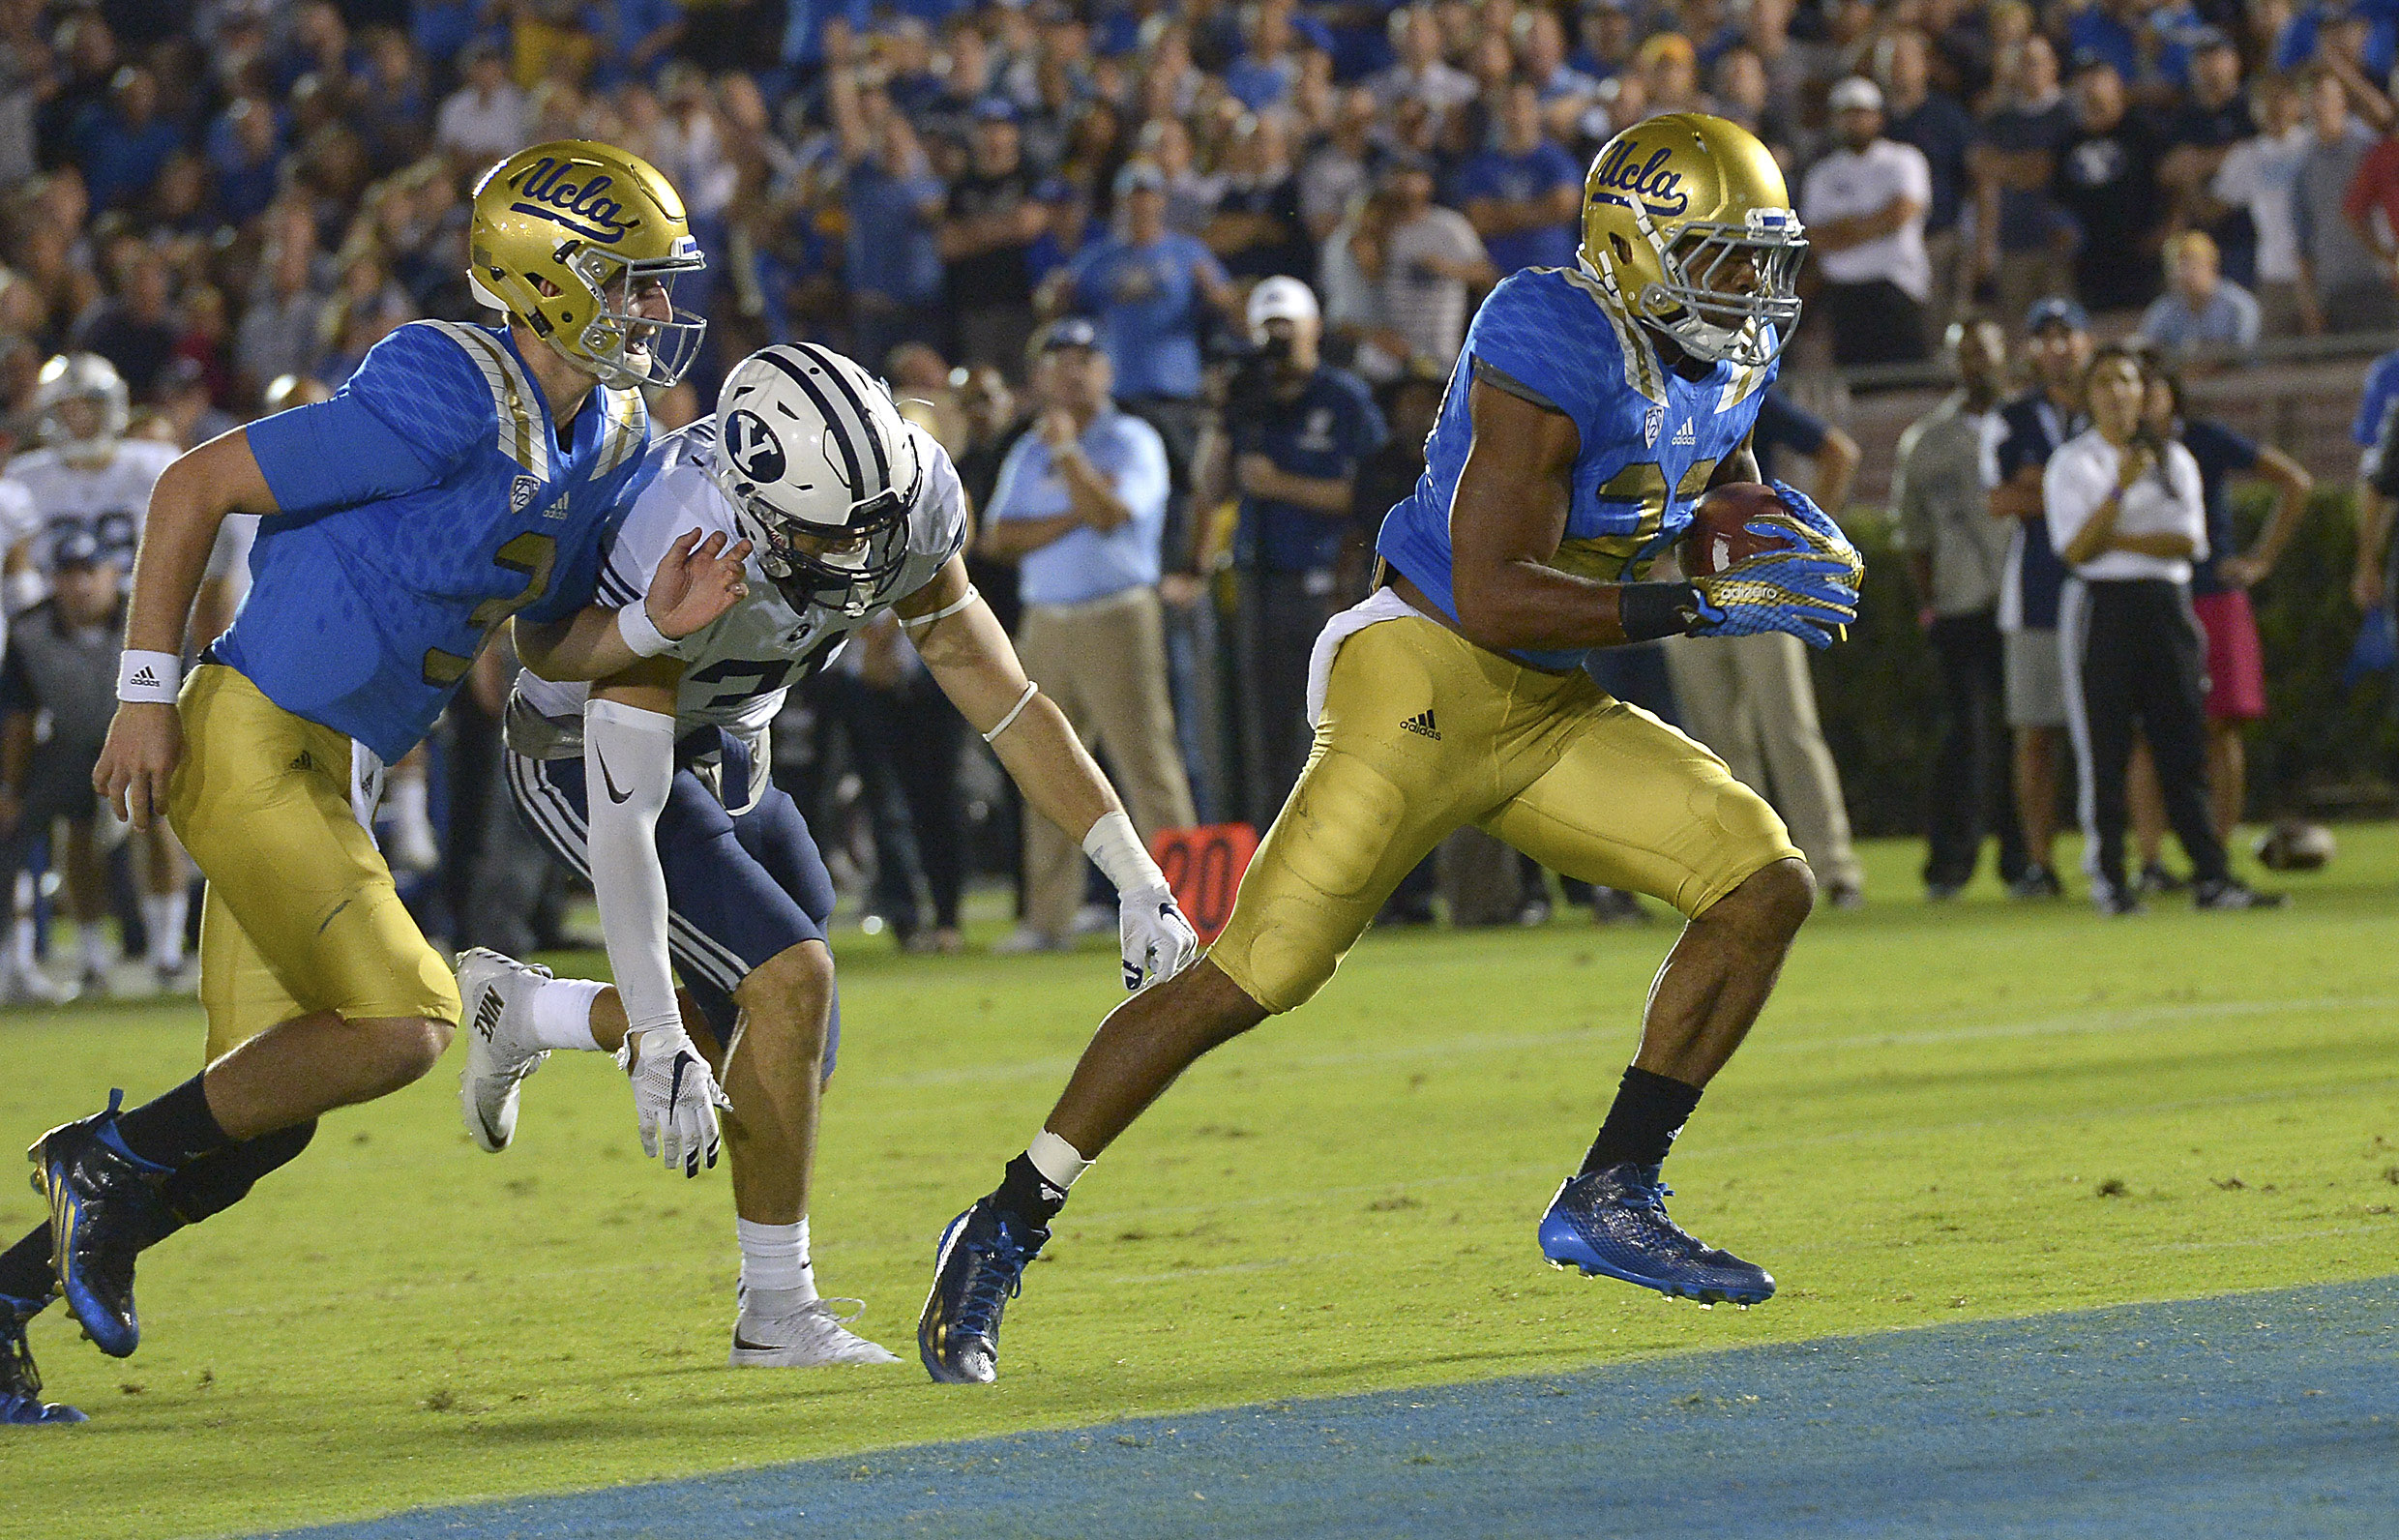 Nate Starks crosses the end zone for the go-ahead score against BYU.